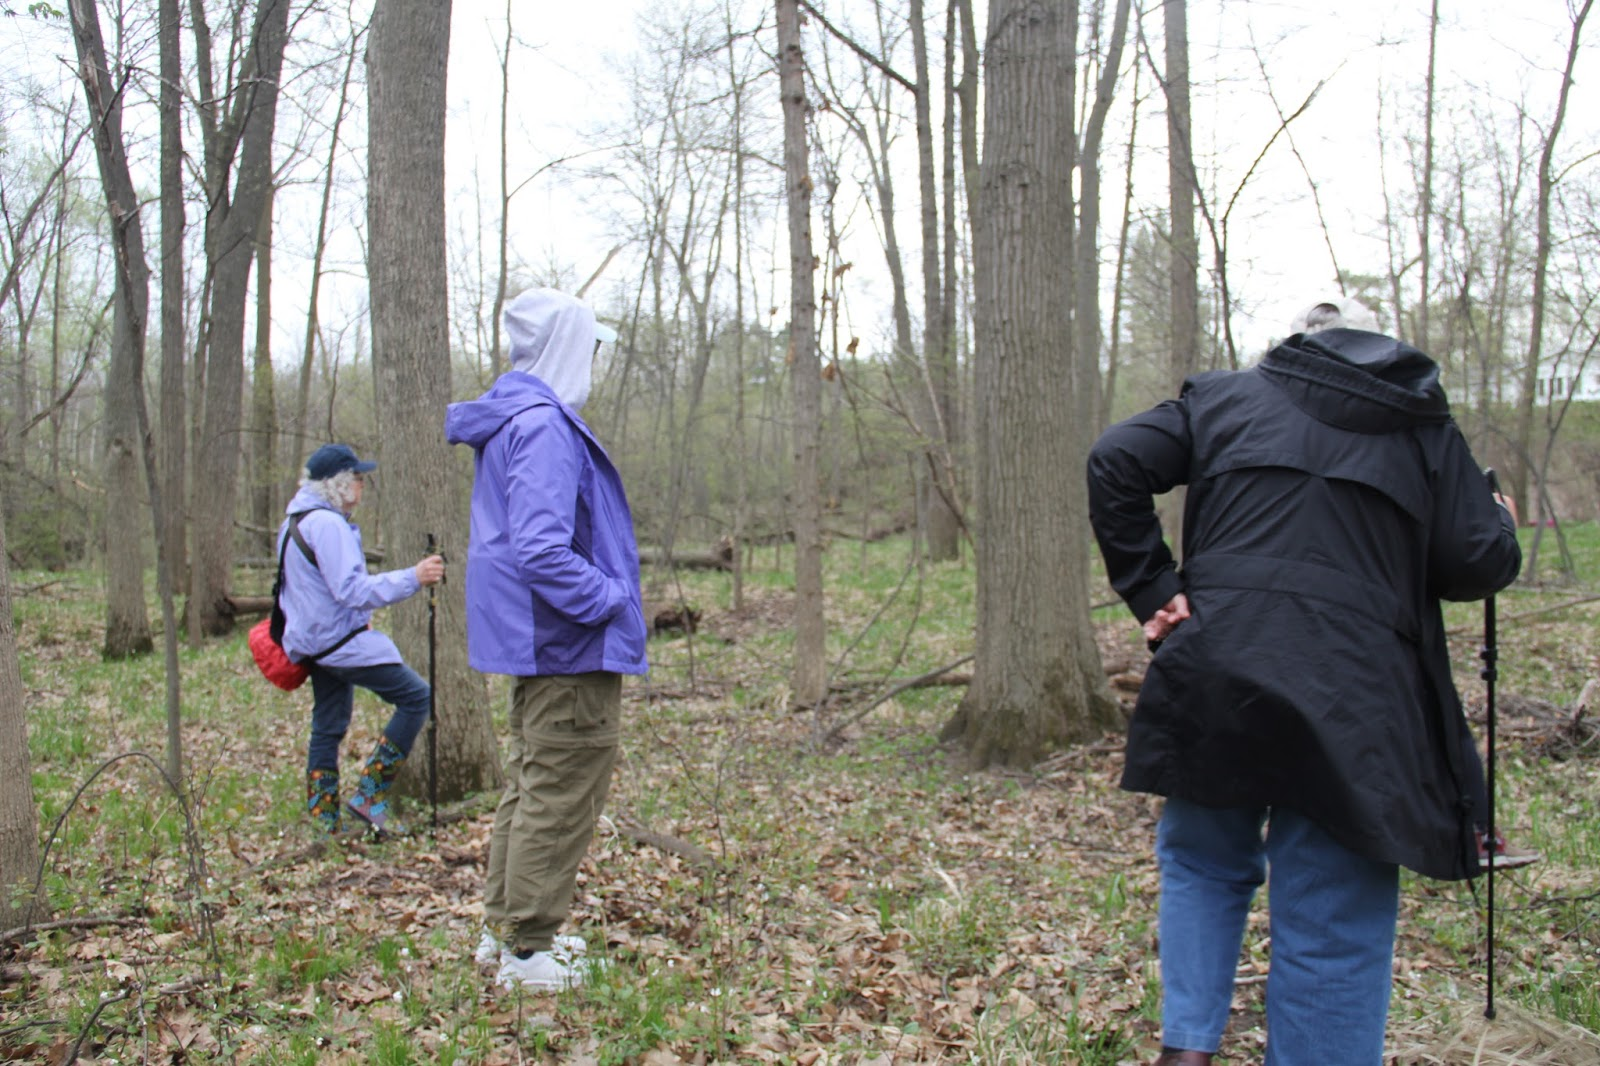 On Sunday 06 May I Led A Wildflower Tour Of The Chippewa Watershed Conservancys Williams Blackburn Preserve After Having Beautiful Weather For Several